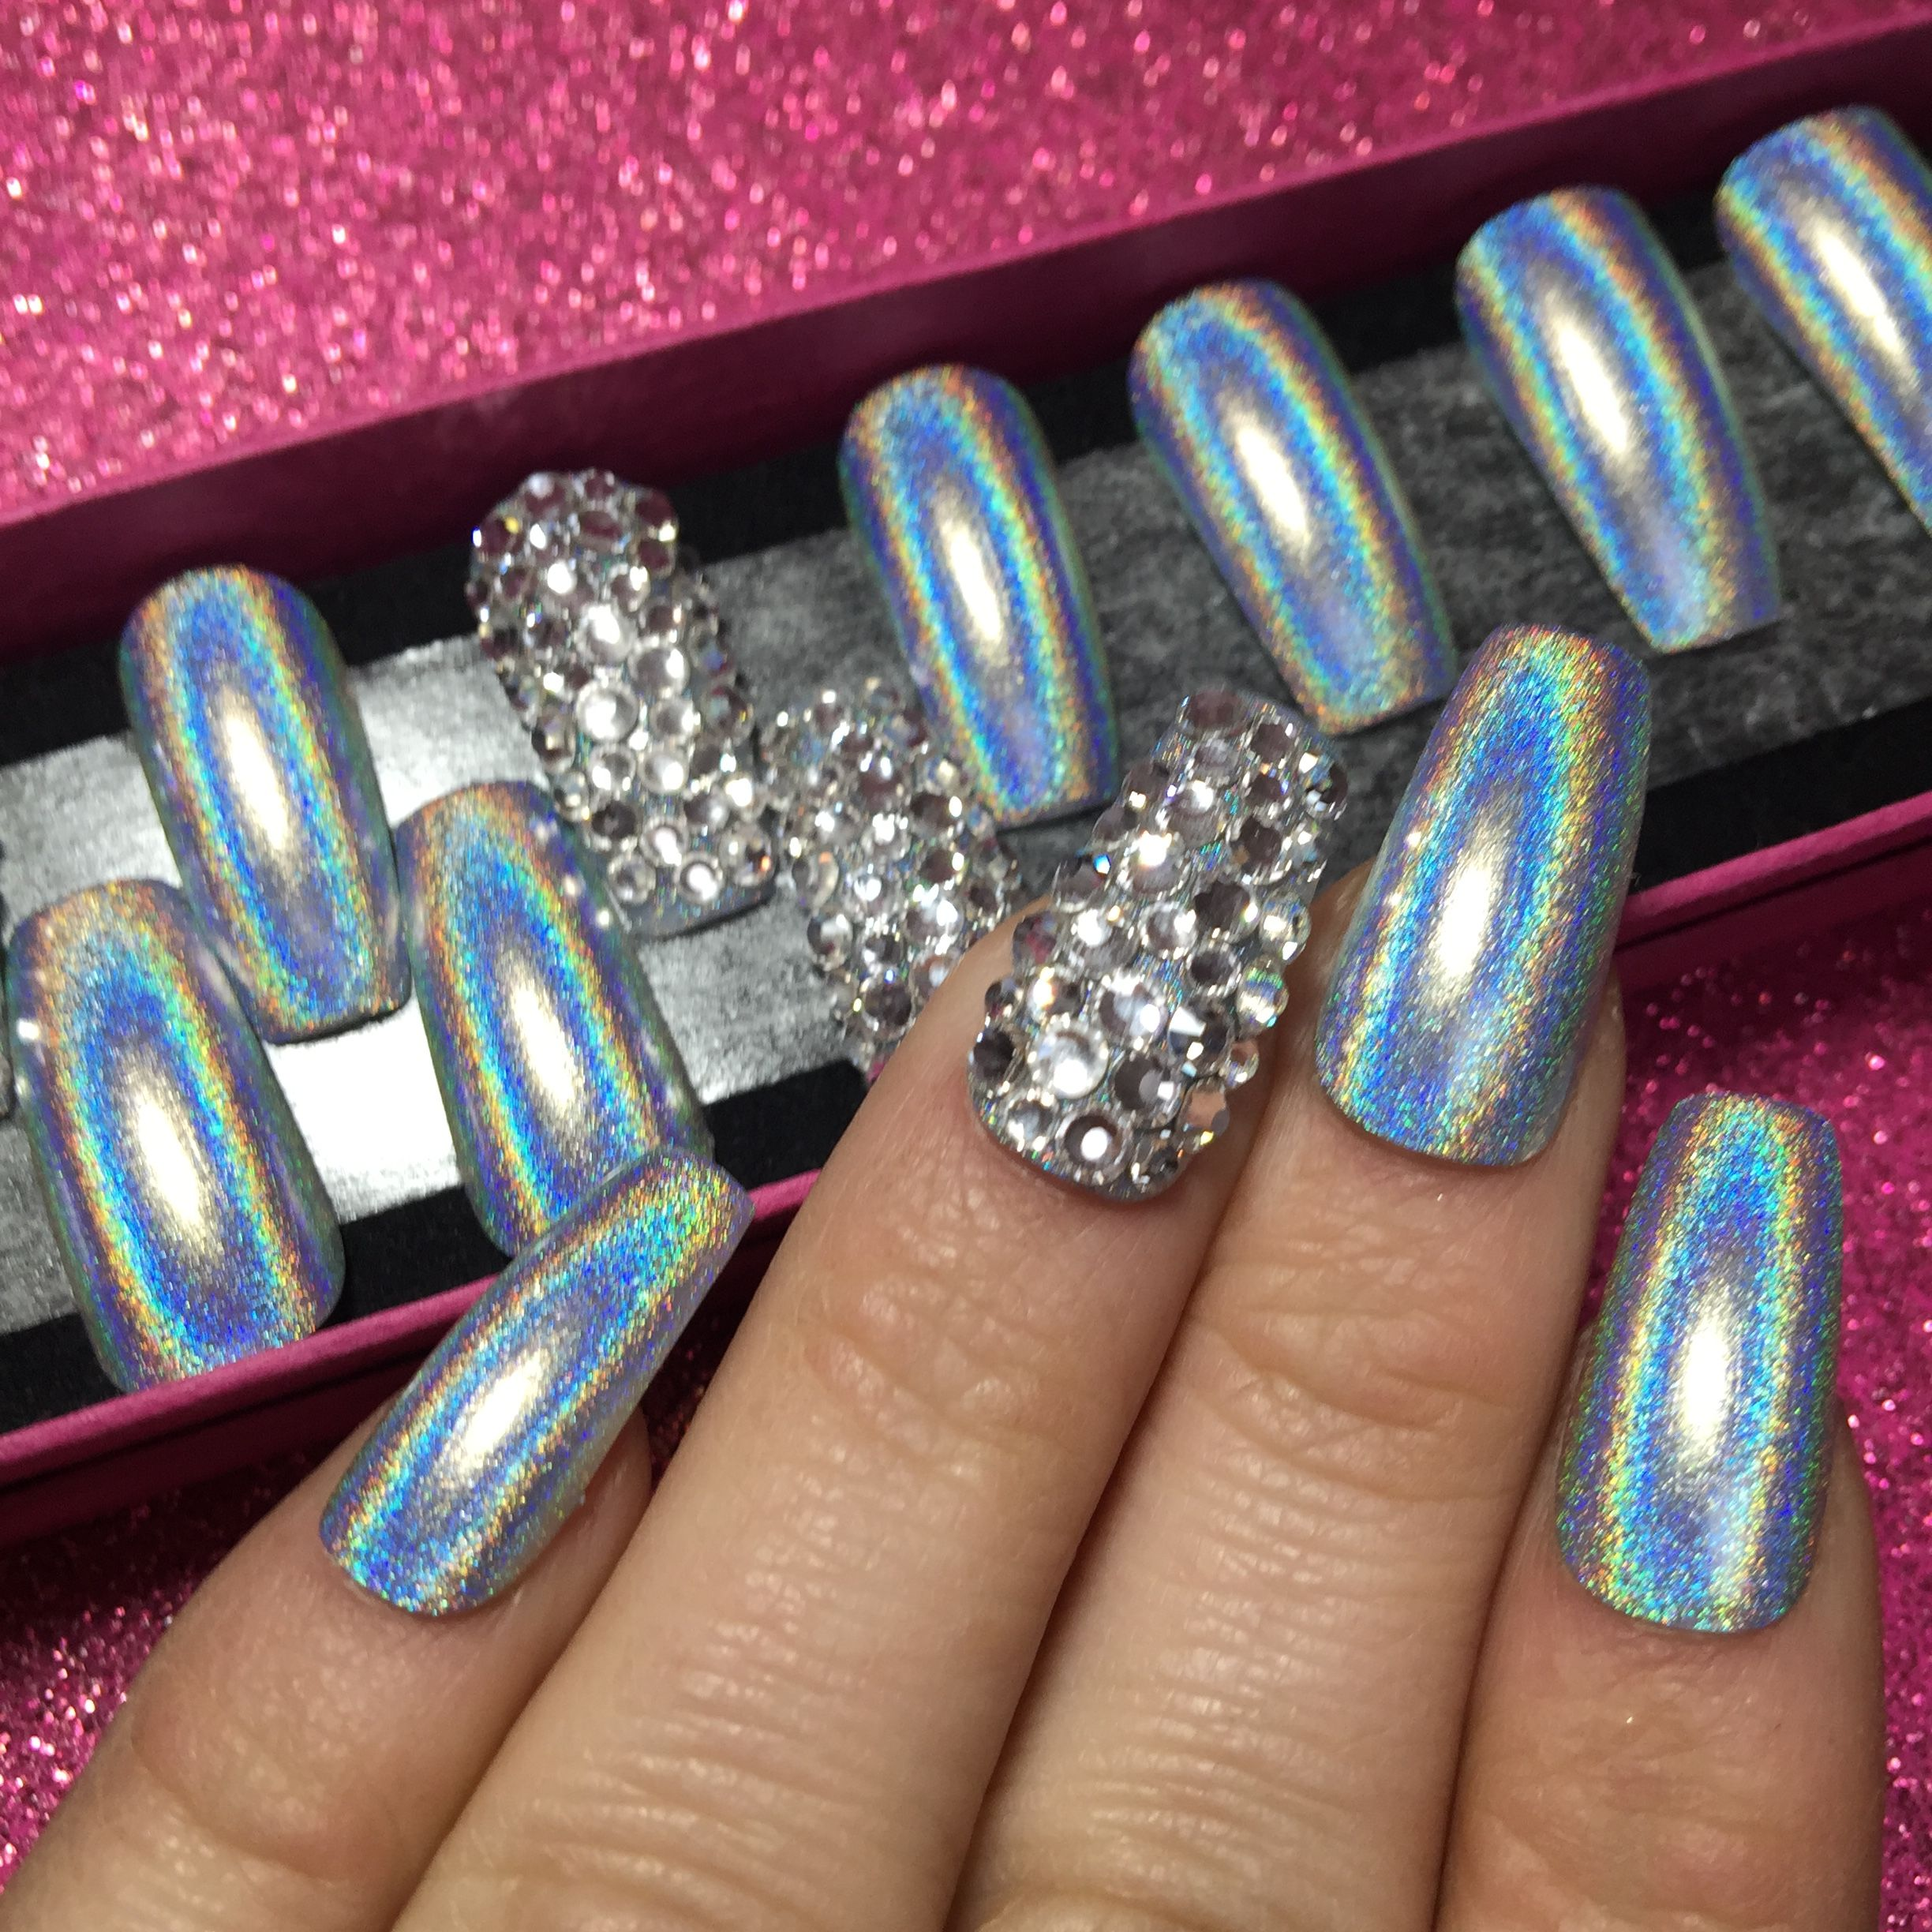 Long stiletto. Holographic Glitter. Encapsulated silver